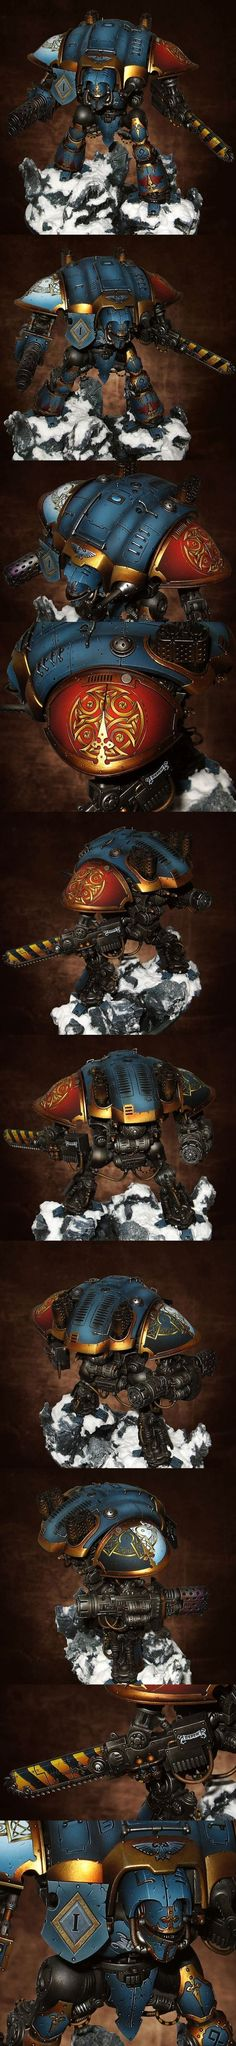 40k - Space Wolves Imperial Knight by Lan Studio: